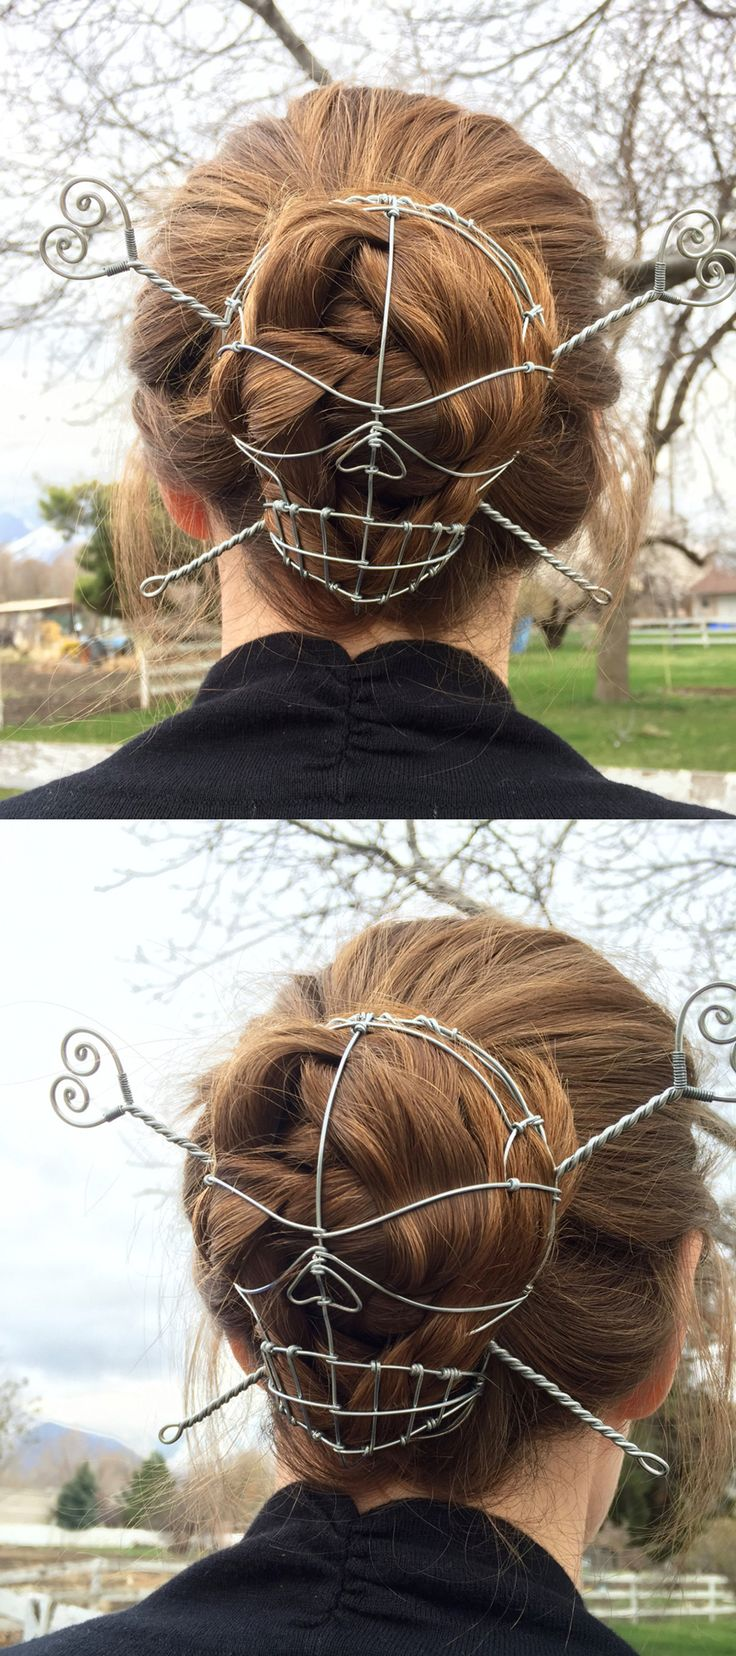 Best Hair Accessories Images On Pinterest Crowns Headdress - Diy bun cover